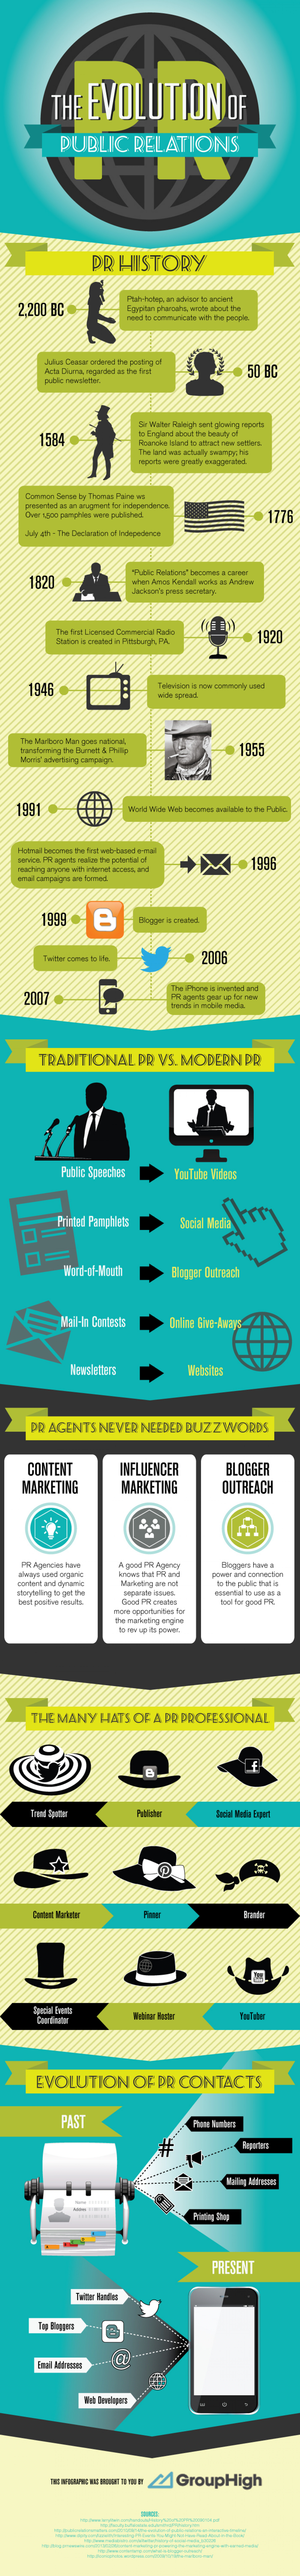 The Evolution of Public Relations Infographic